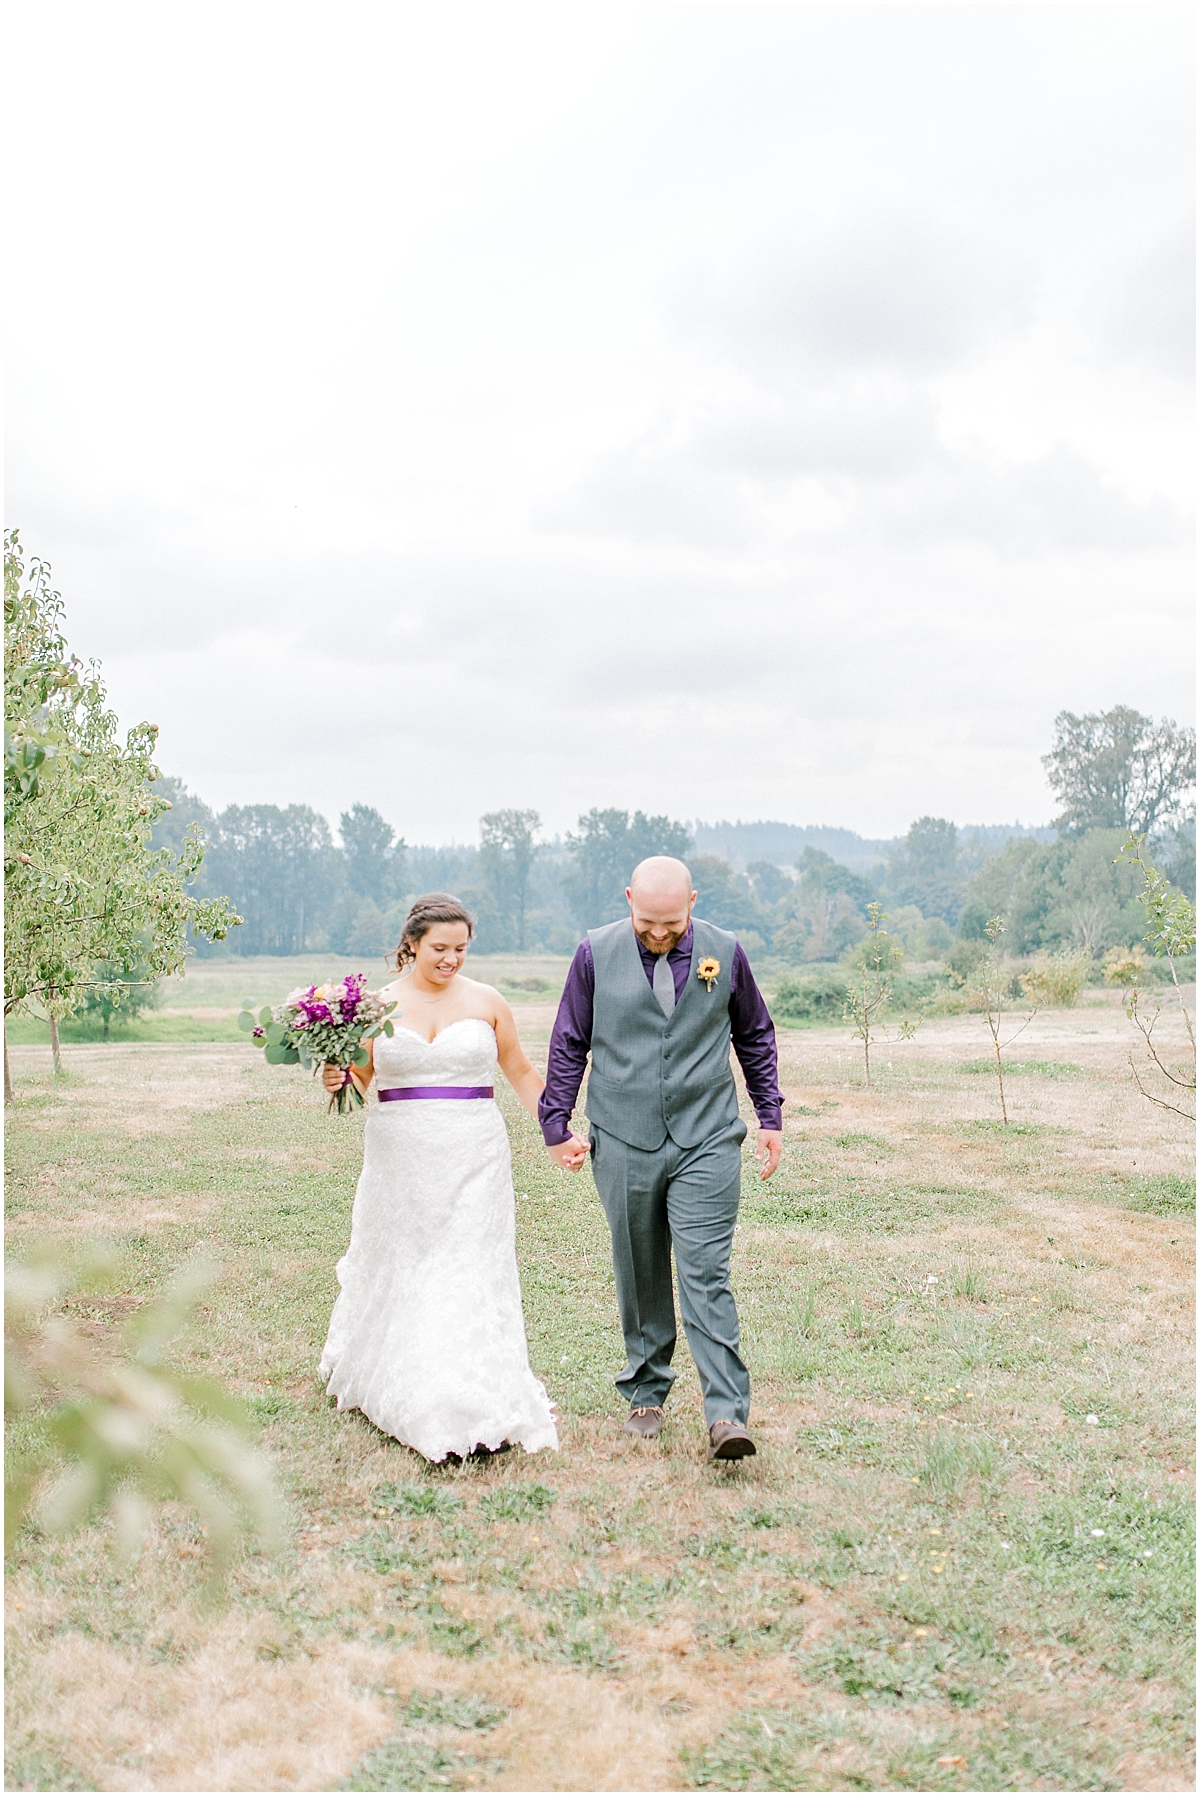 Sunflower themed wedding with purple accents, Emma Rose Company Seattle Wedding Photographer, Light and Airy photographer Kindred Presets Wedding Details PNW_0130.jpg